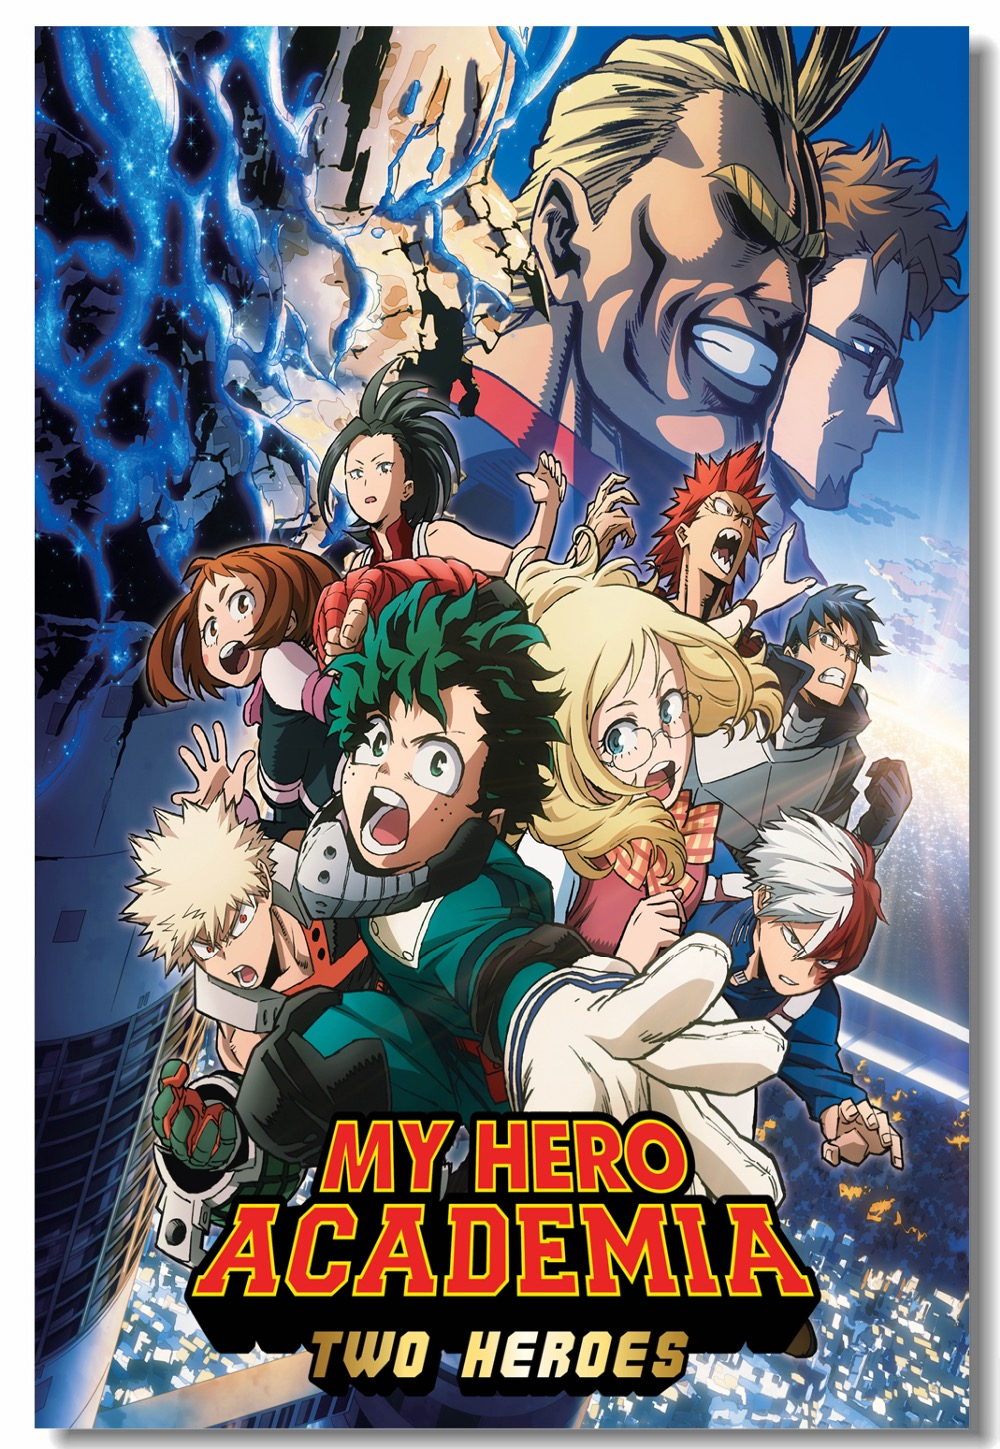 My Hero Academia: Two Heroes Anime Screening